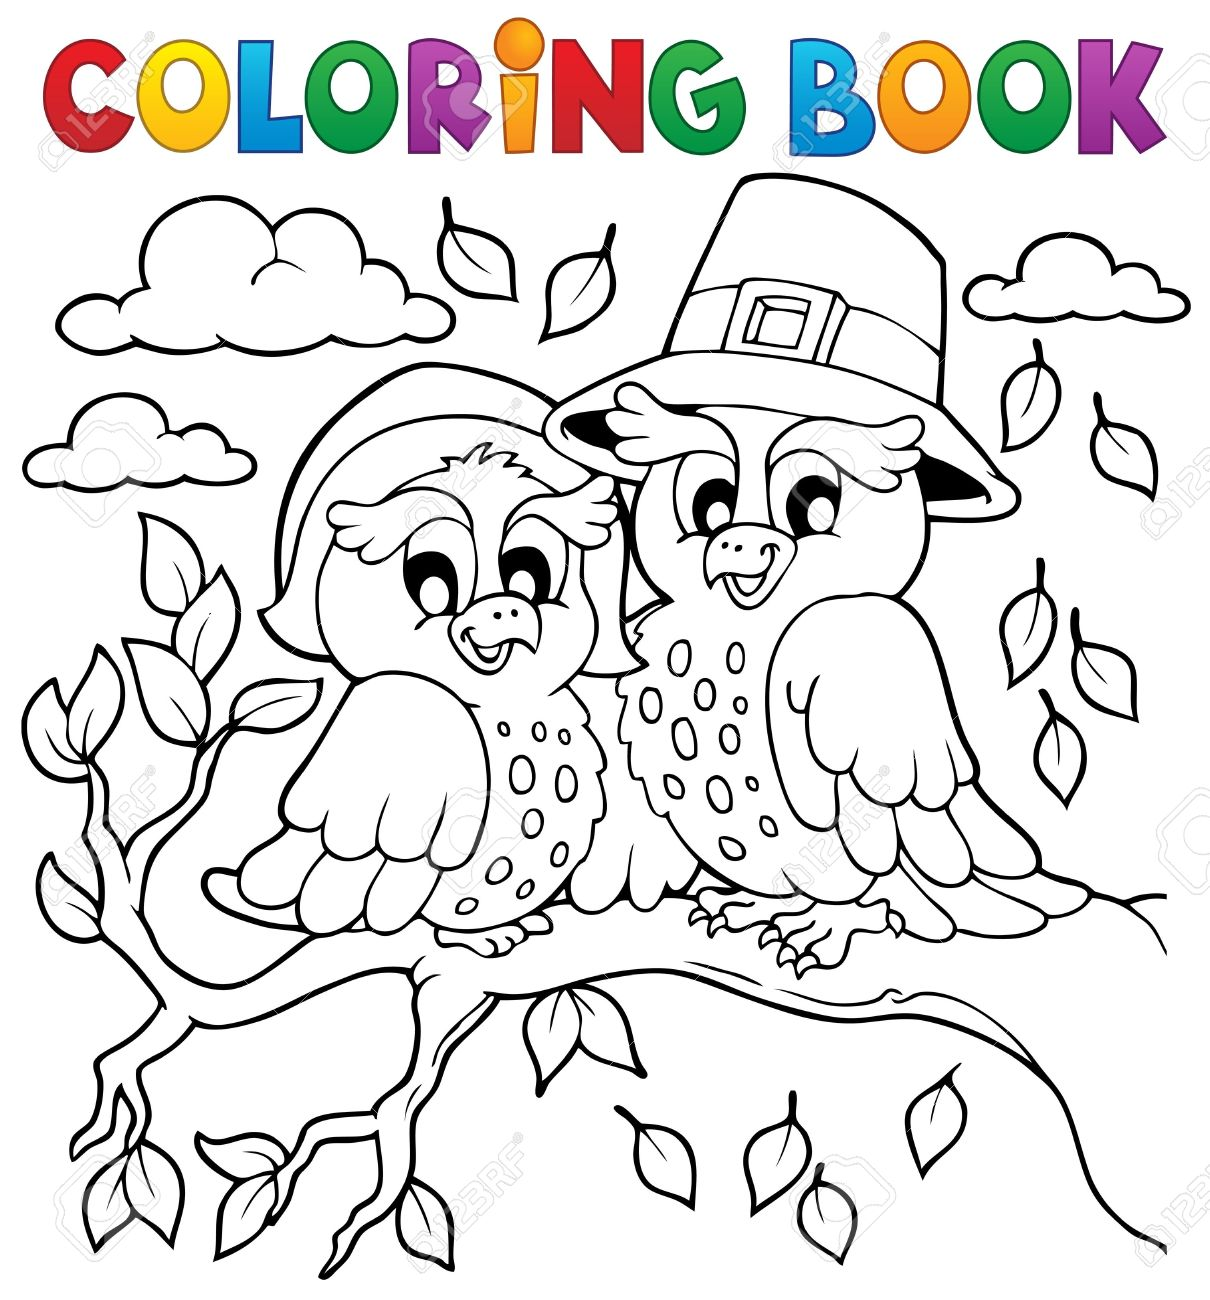 Coloring Book Thanksgiving Image Royalty Free Cliparts, Vectors, And ...